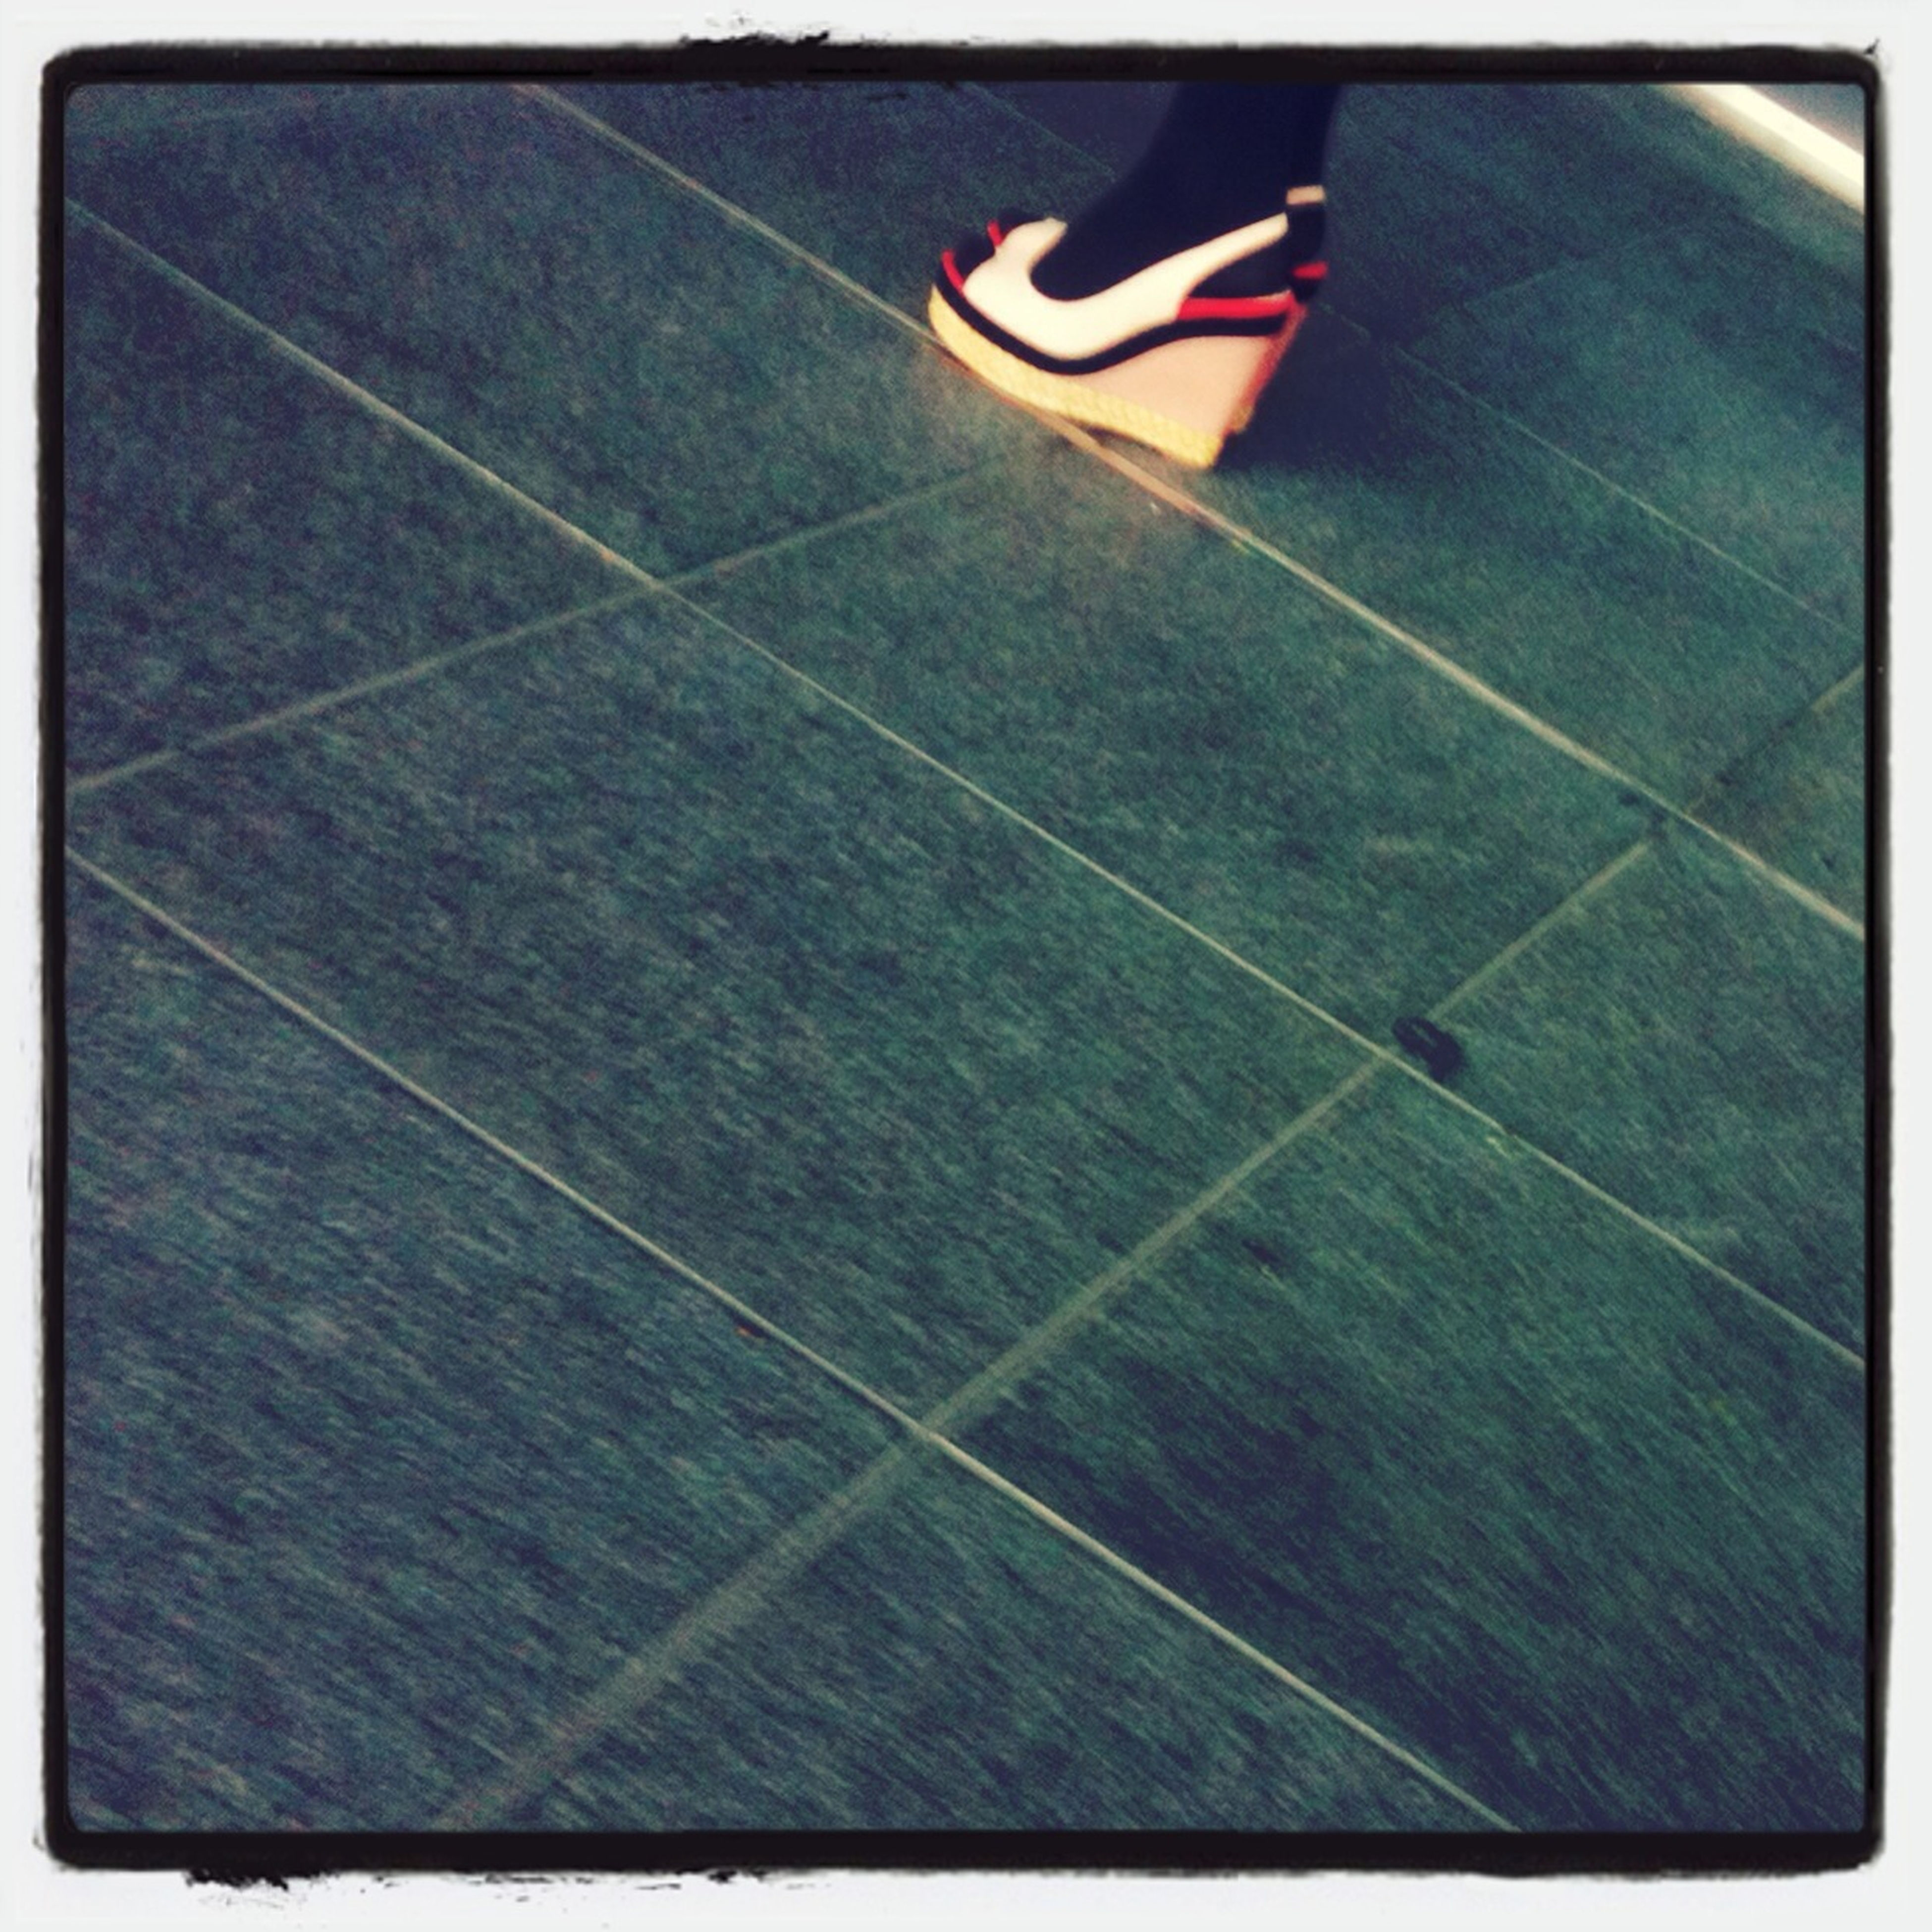 transfer print, auto post production filter, low section, high angle view, person, shadow, part of, street, pattern, day, outdoors, sunlight, shoe, transportation, tiled floor, road marking, sport